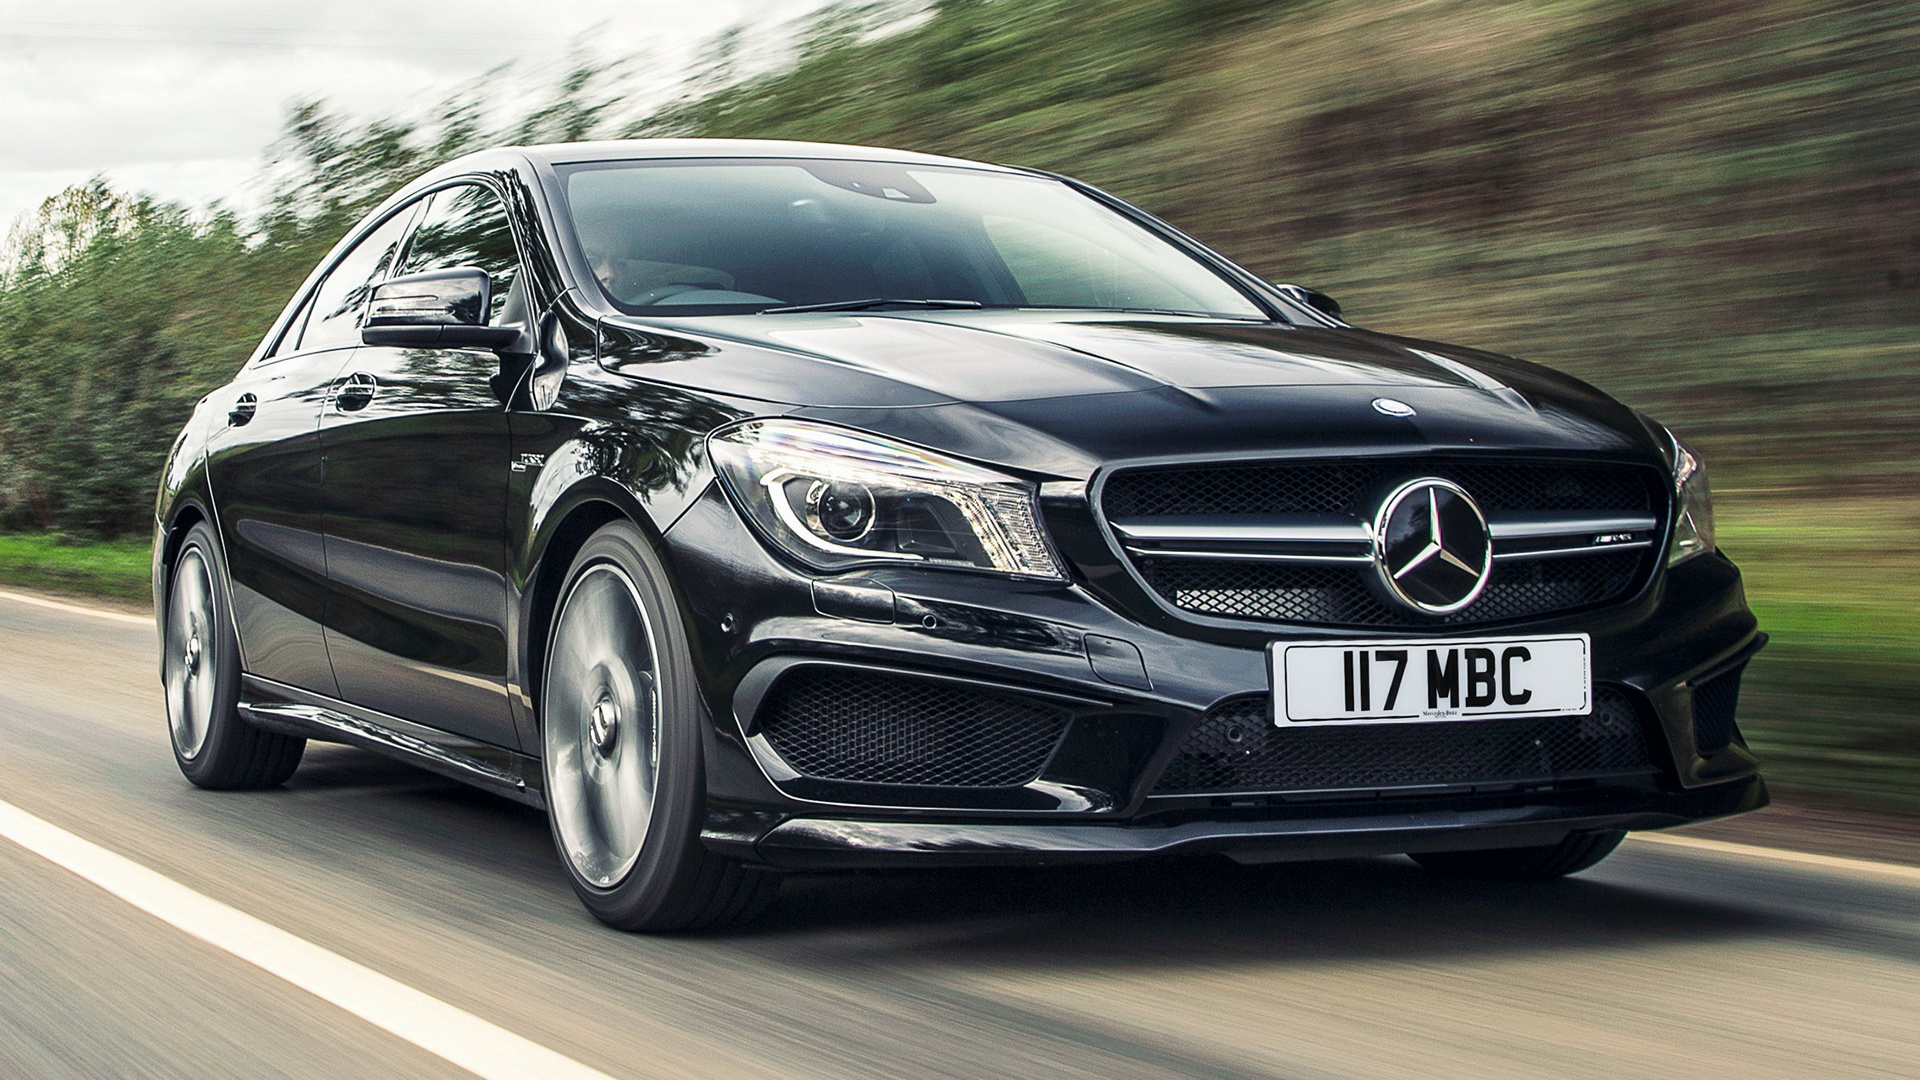 Mercedes Benz CLA 45 AMG 2013 UK Wallpapers and HD